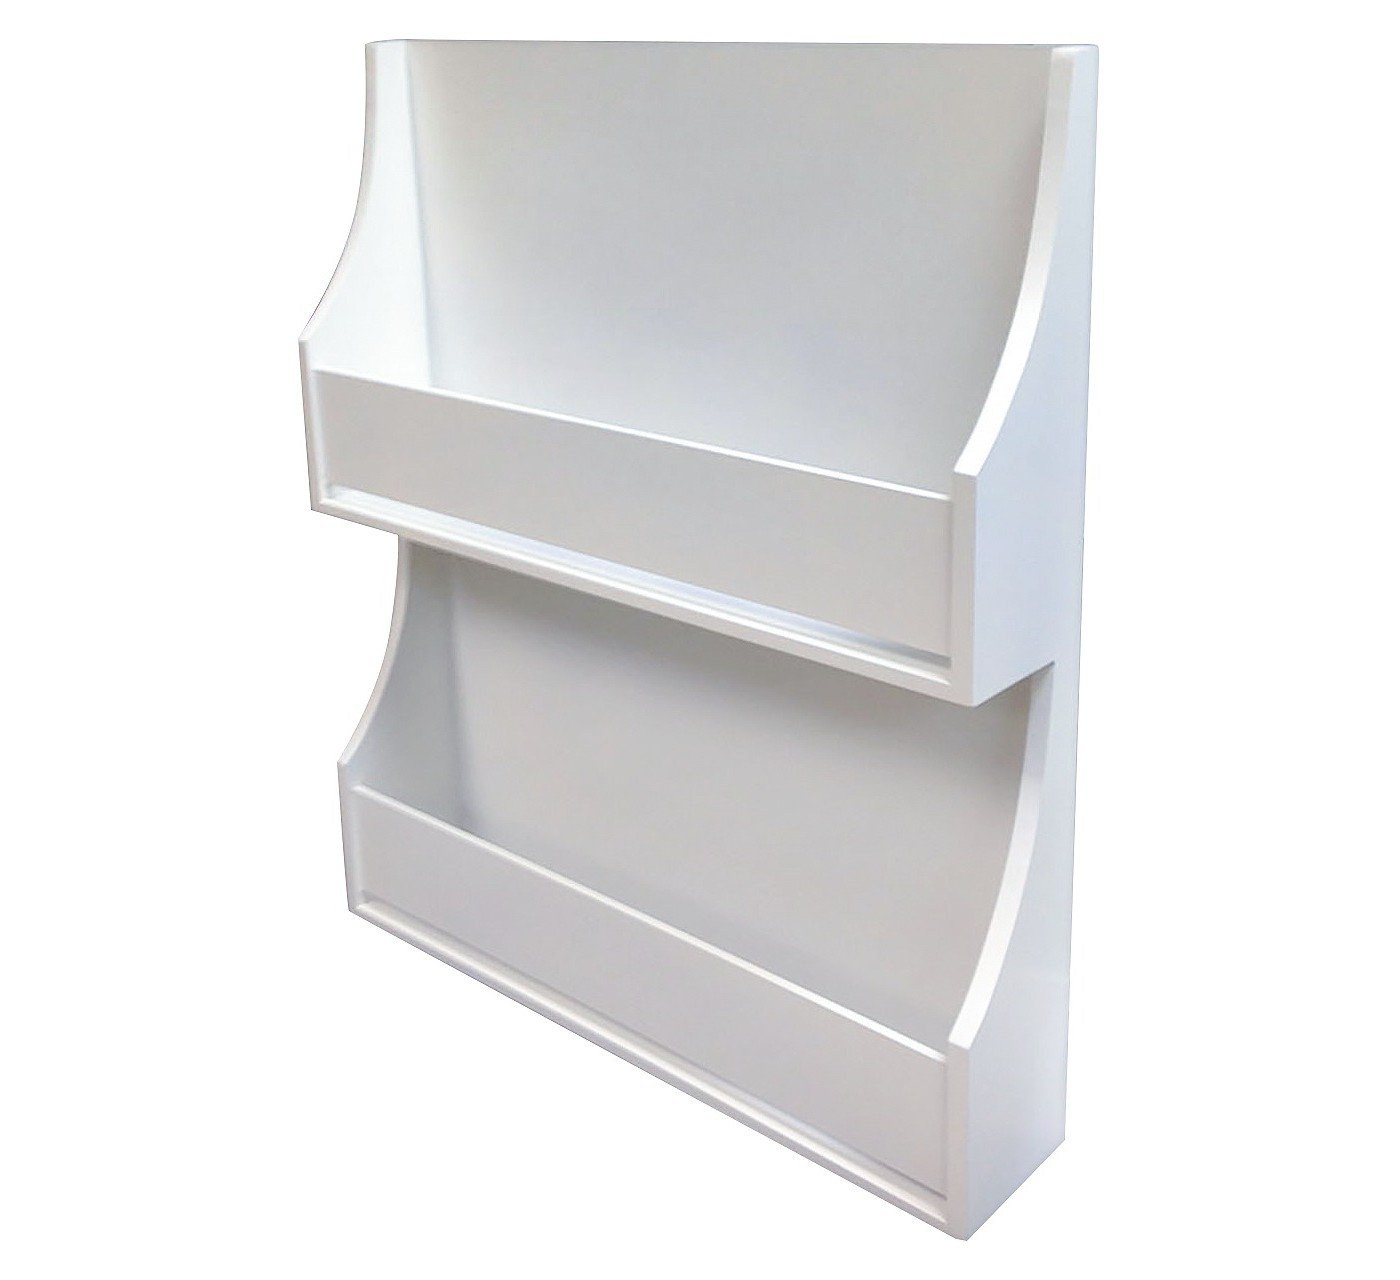 2-Tiered White Bookshelf